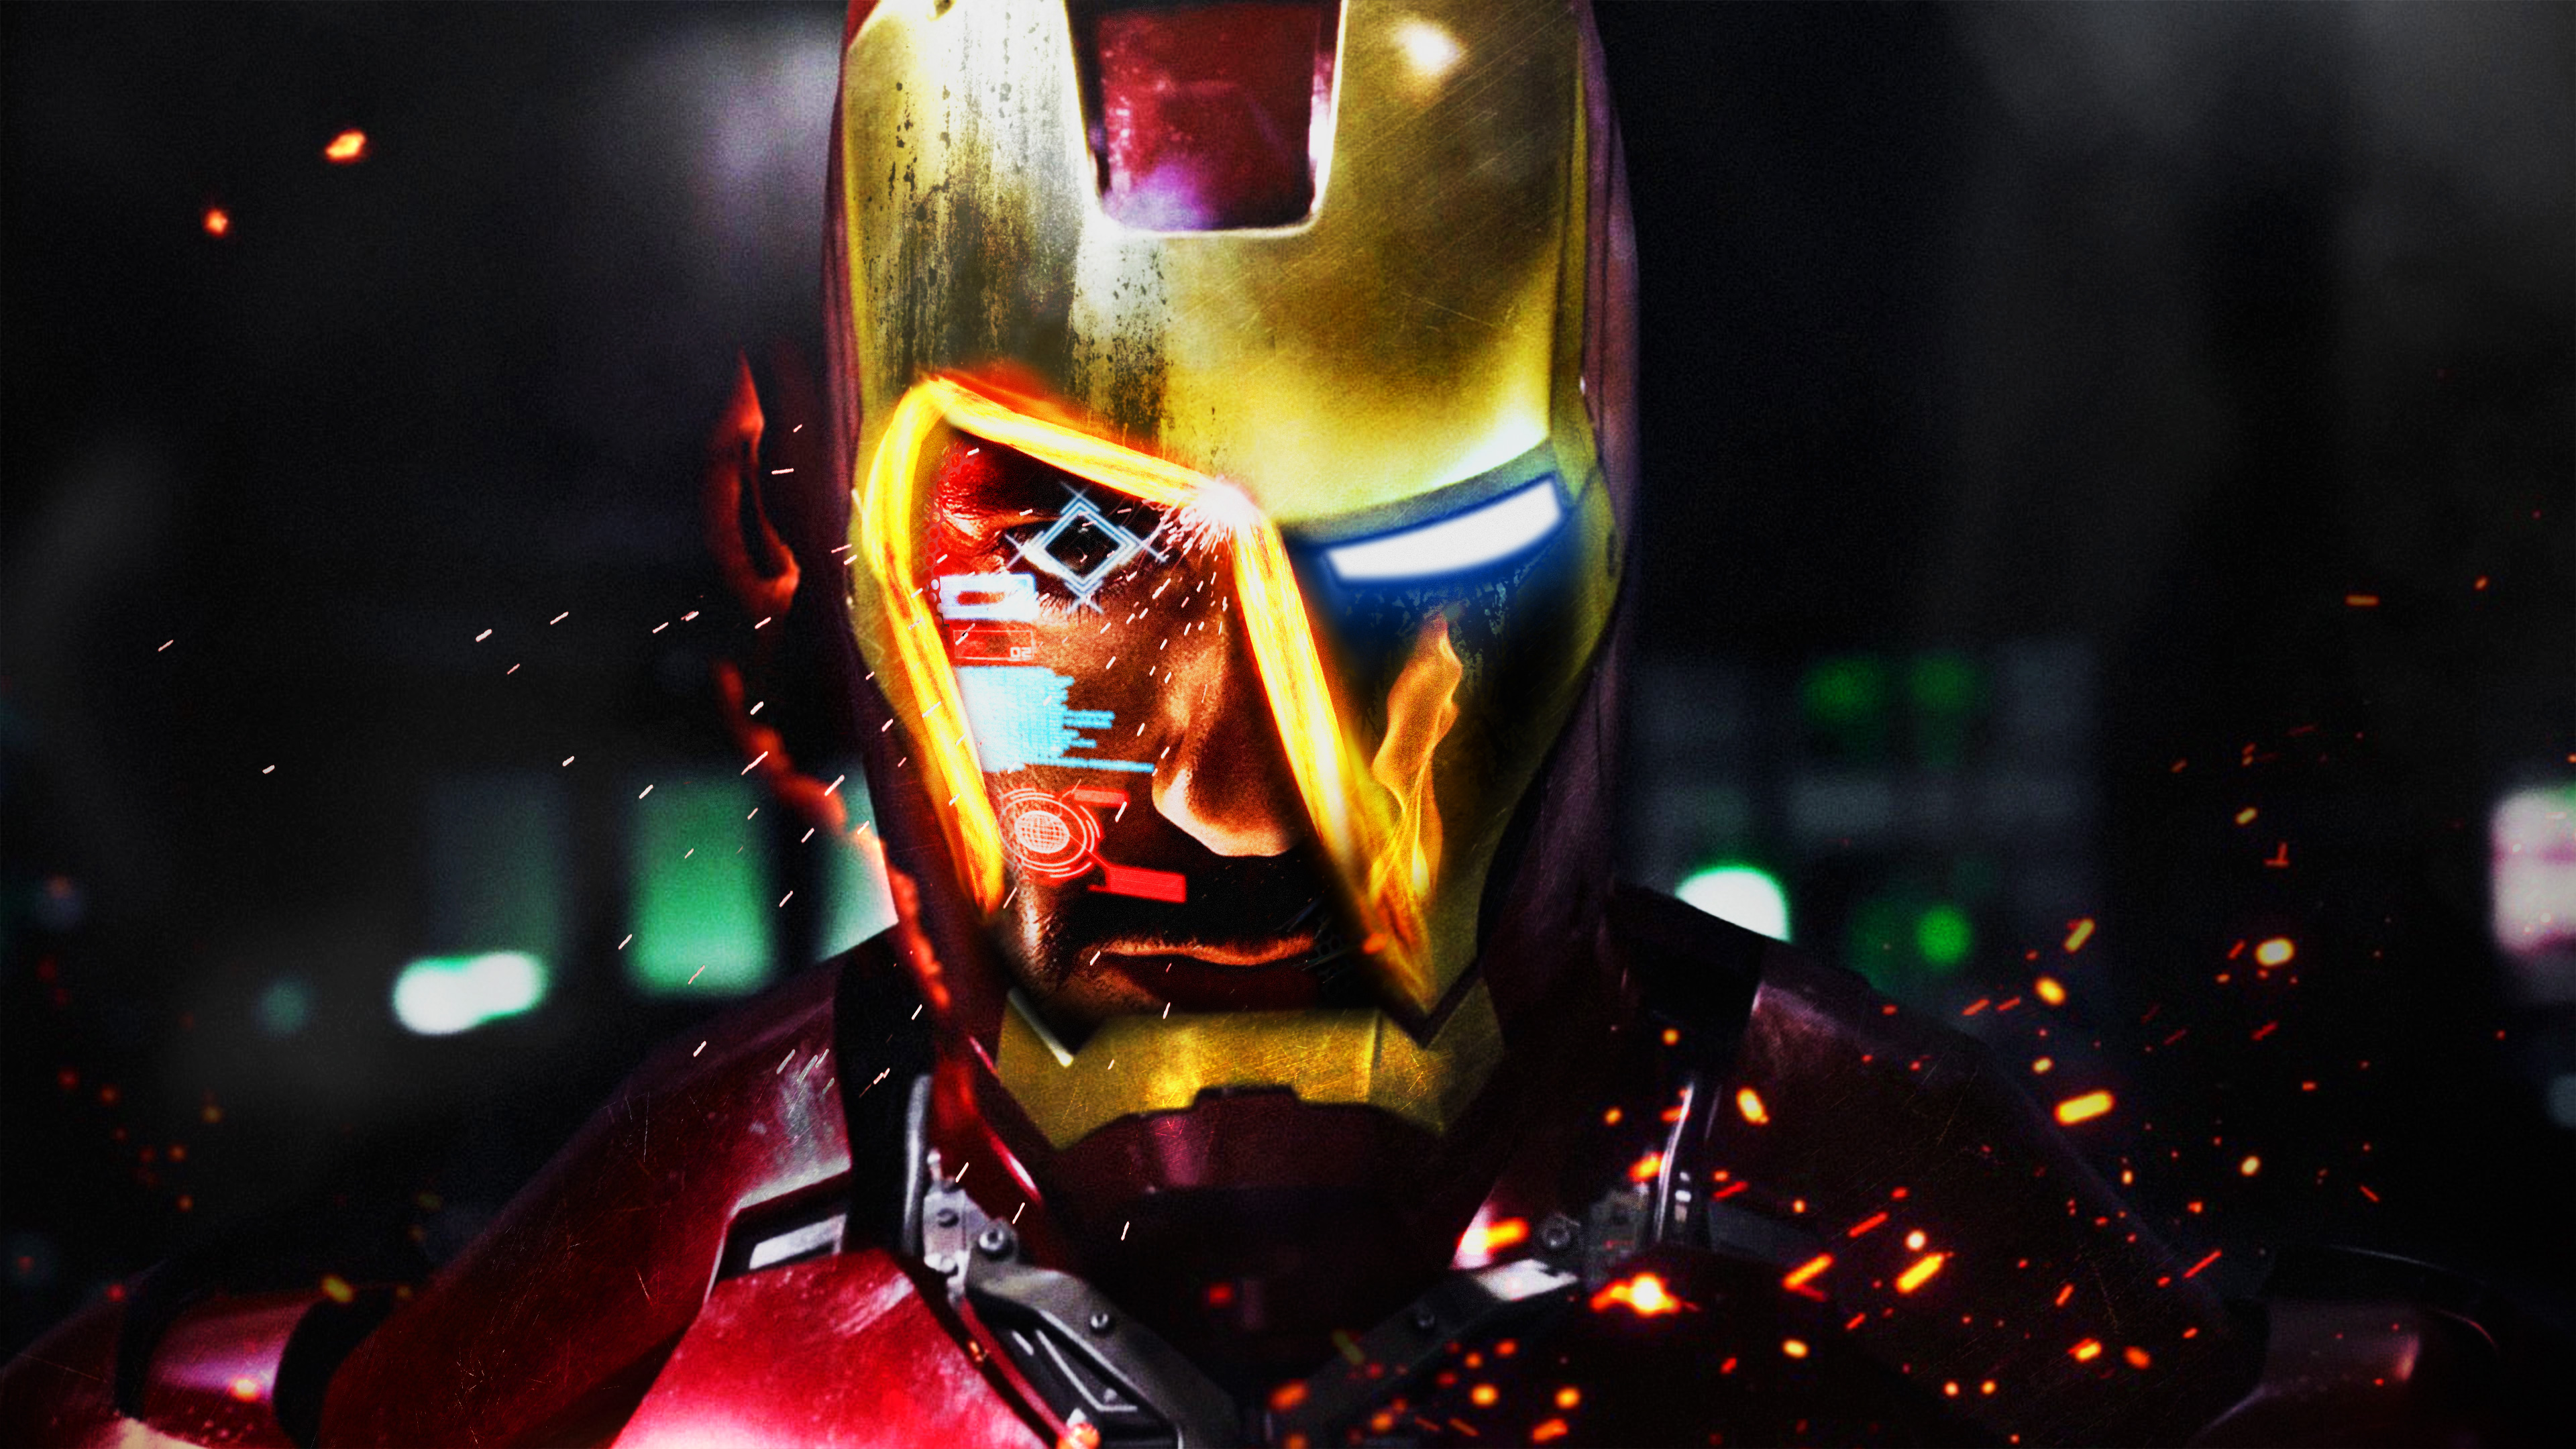 1600x1200 Ironman 4k 1600x1200 Resolution Hd 4k Wallpapers Images Backgrounds Photos And Pictures